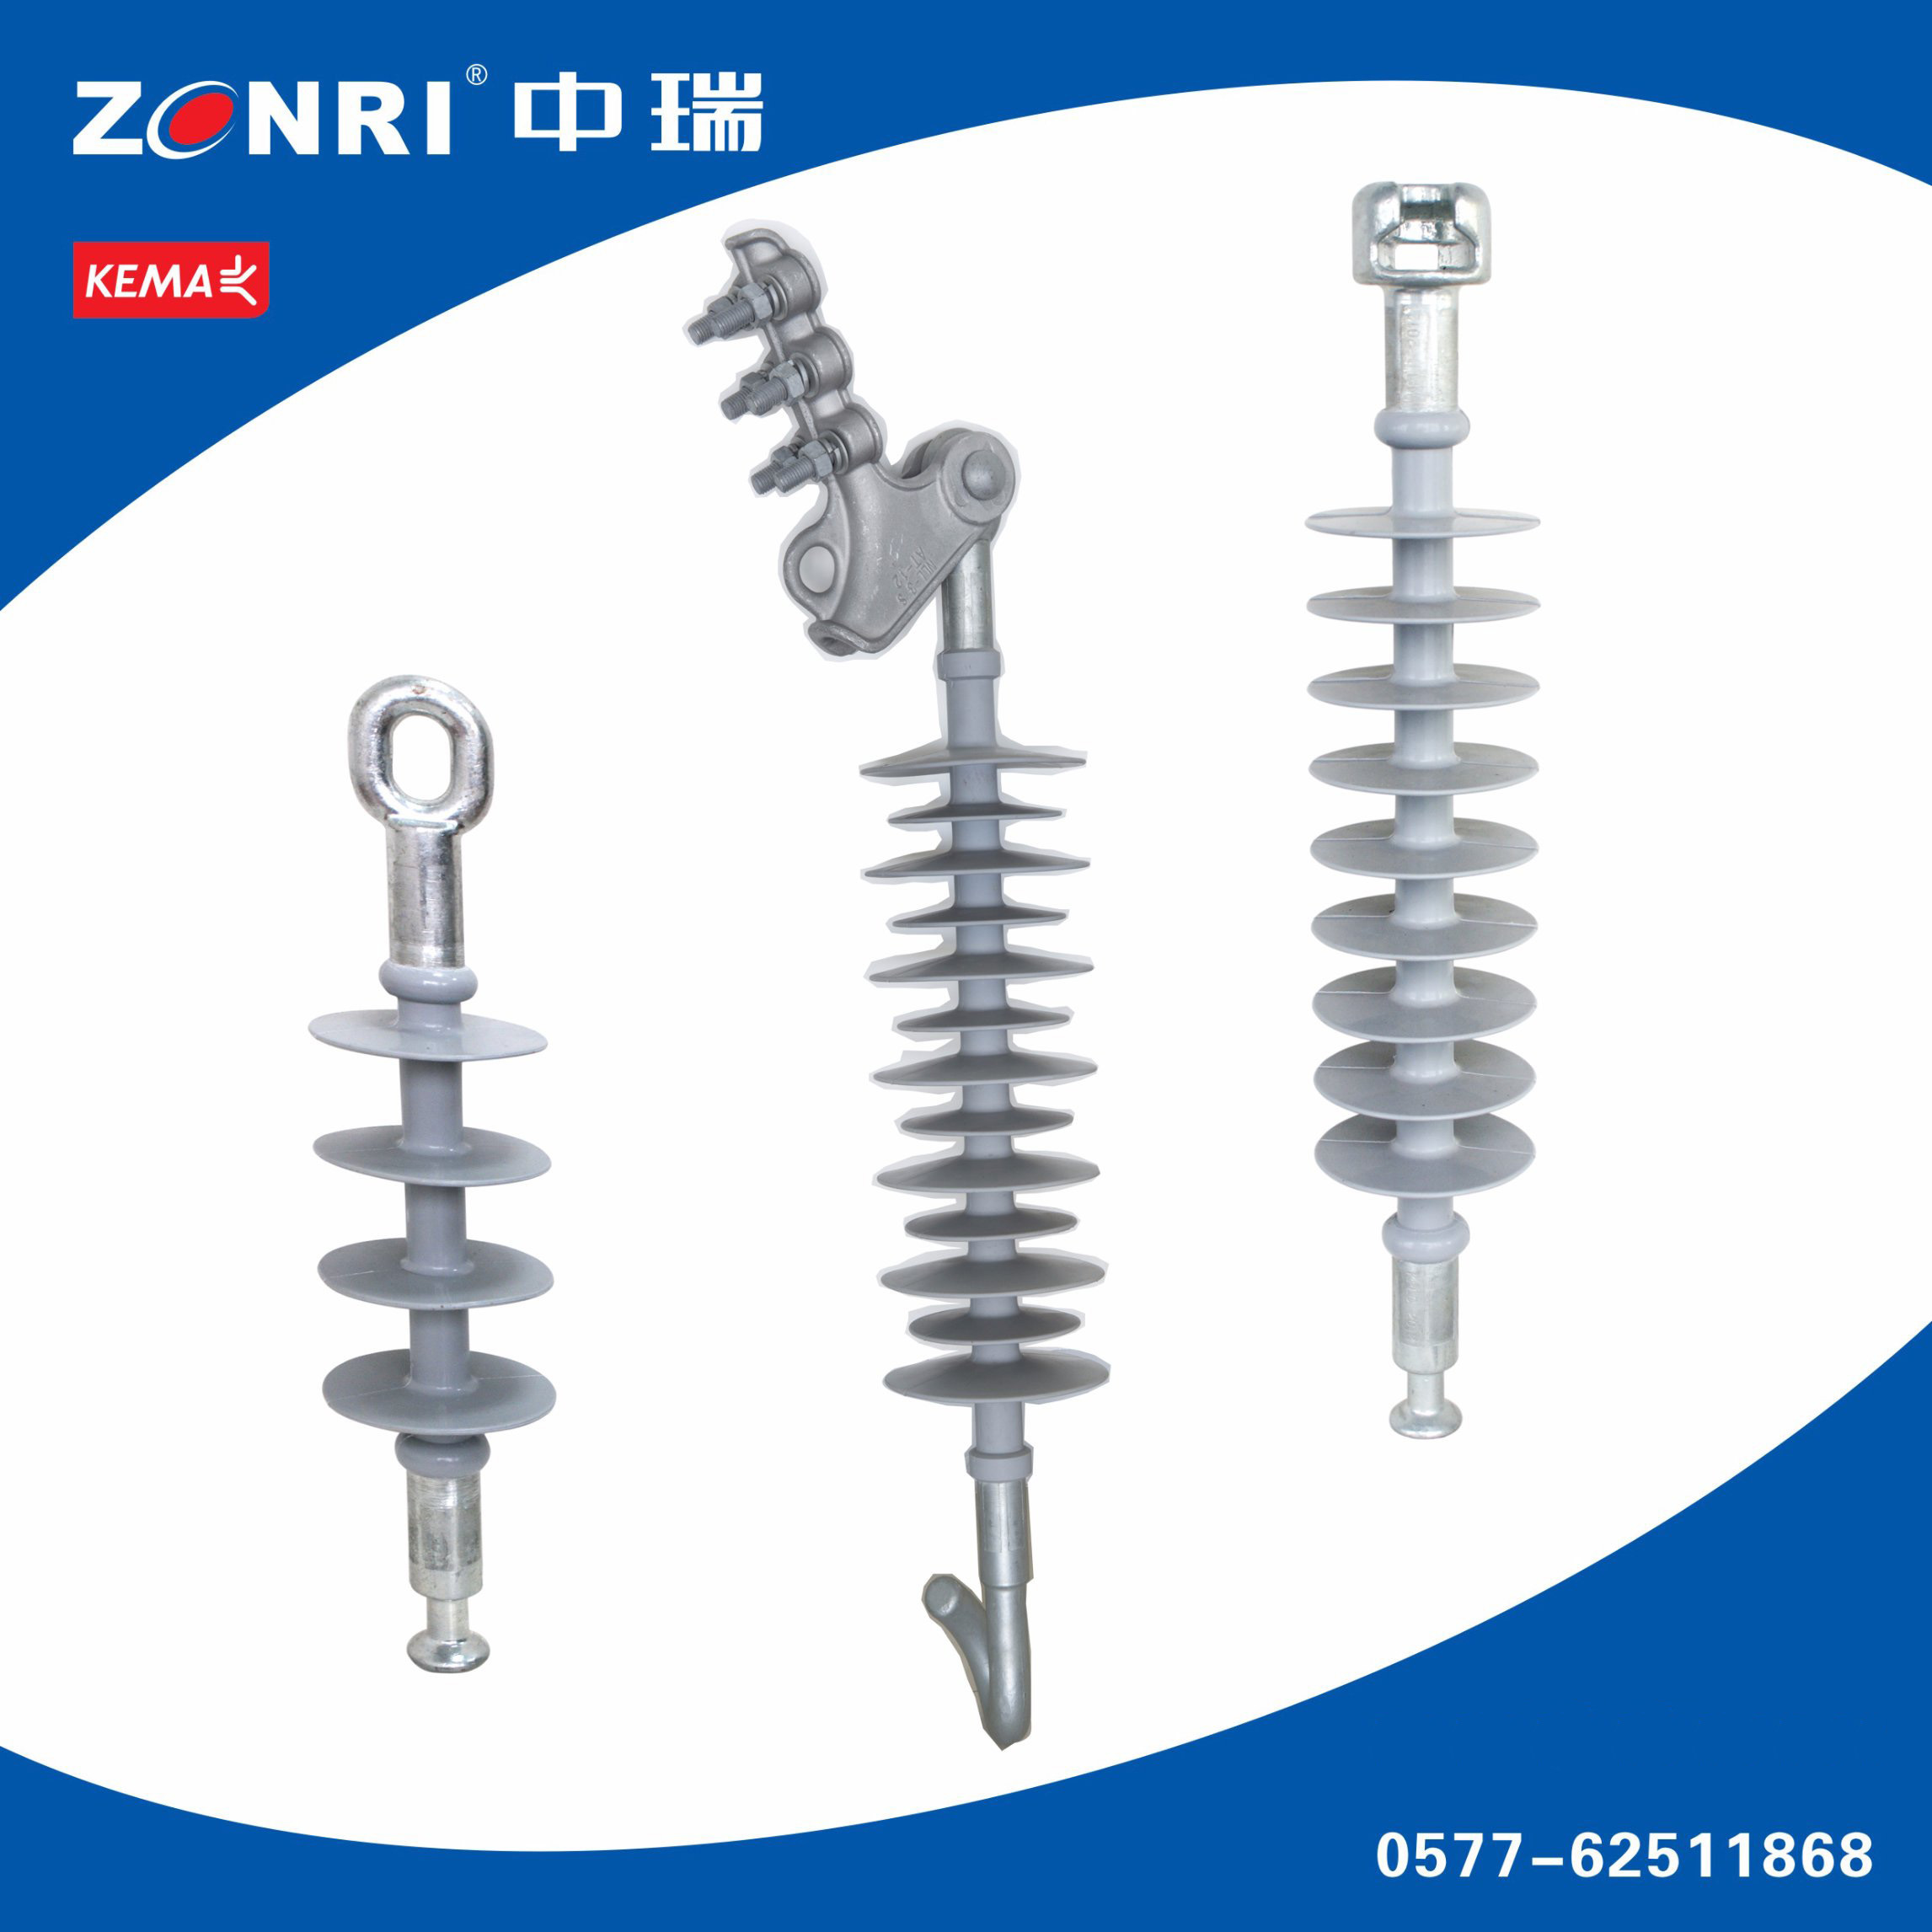 Composite Insulator/ Suspension Insulator (Fxbw-24/70, Fxbw-24/120